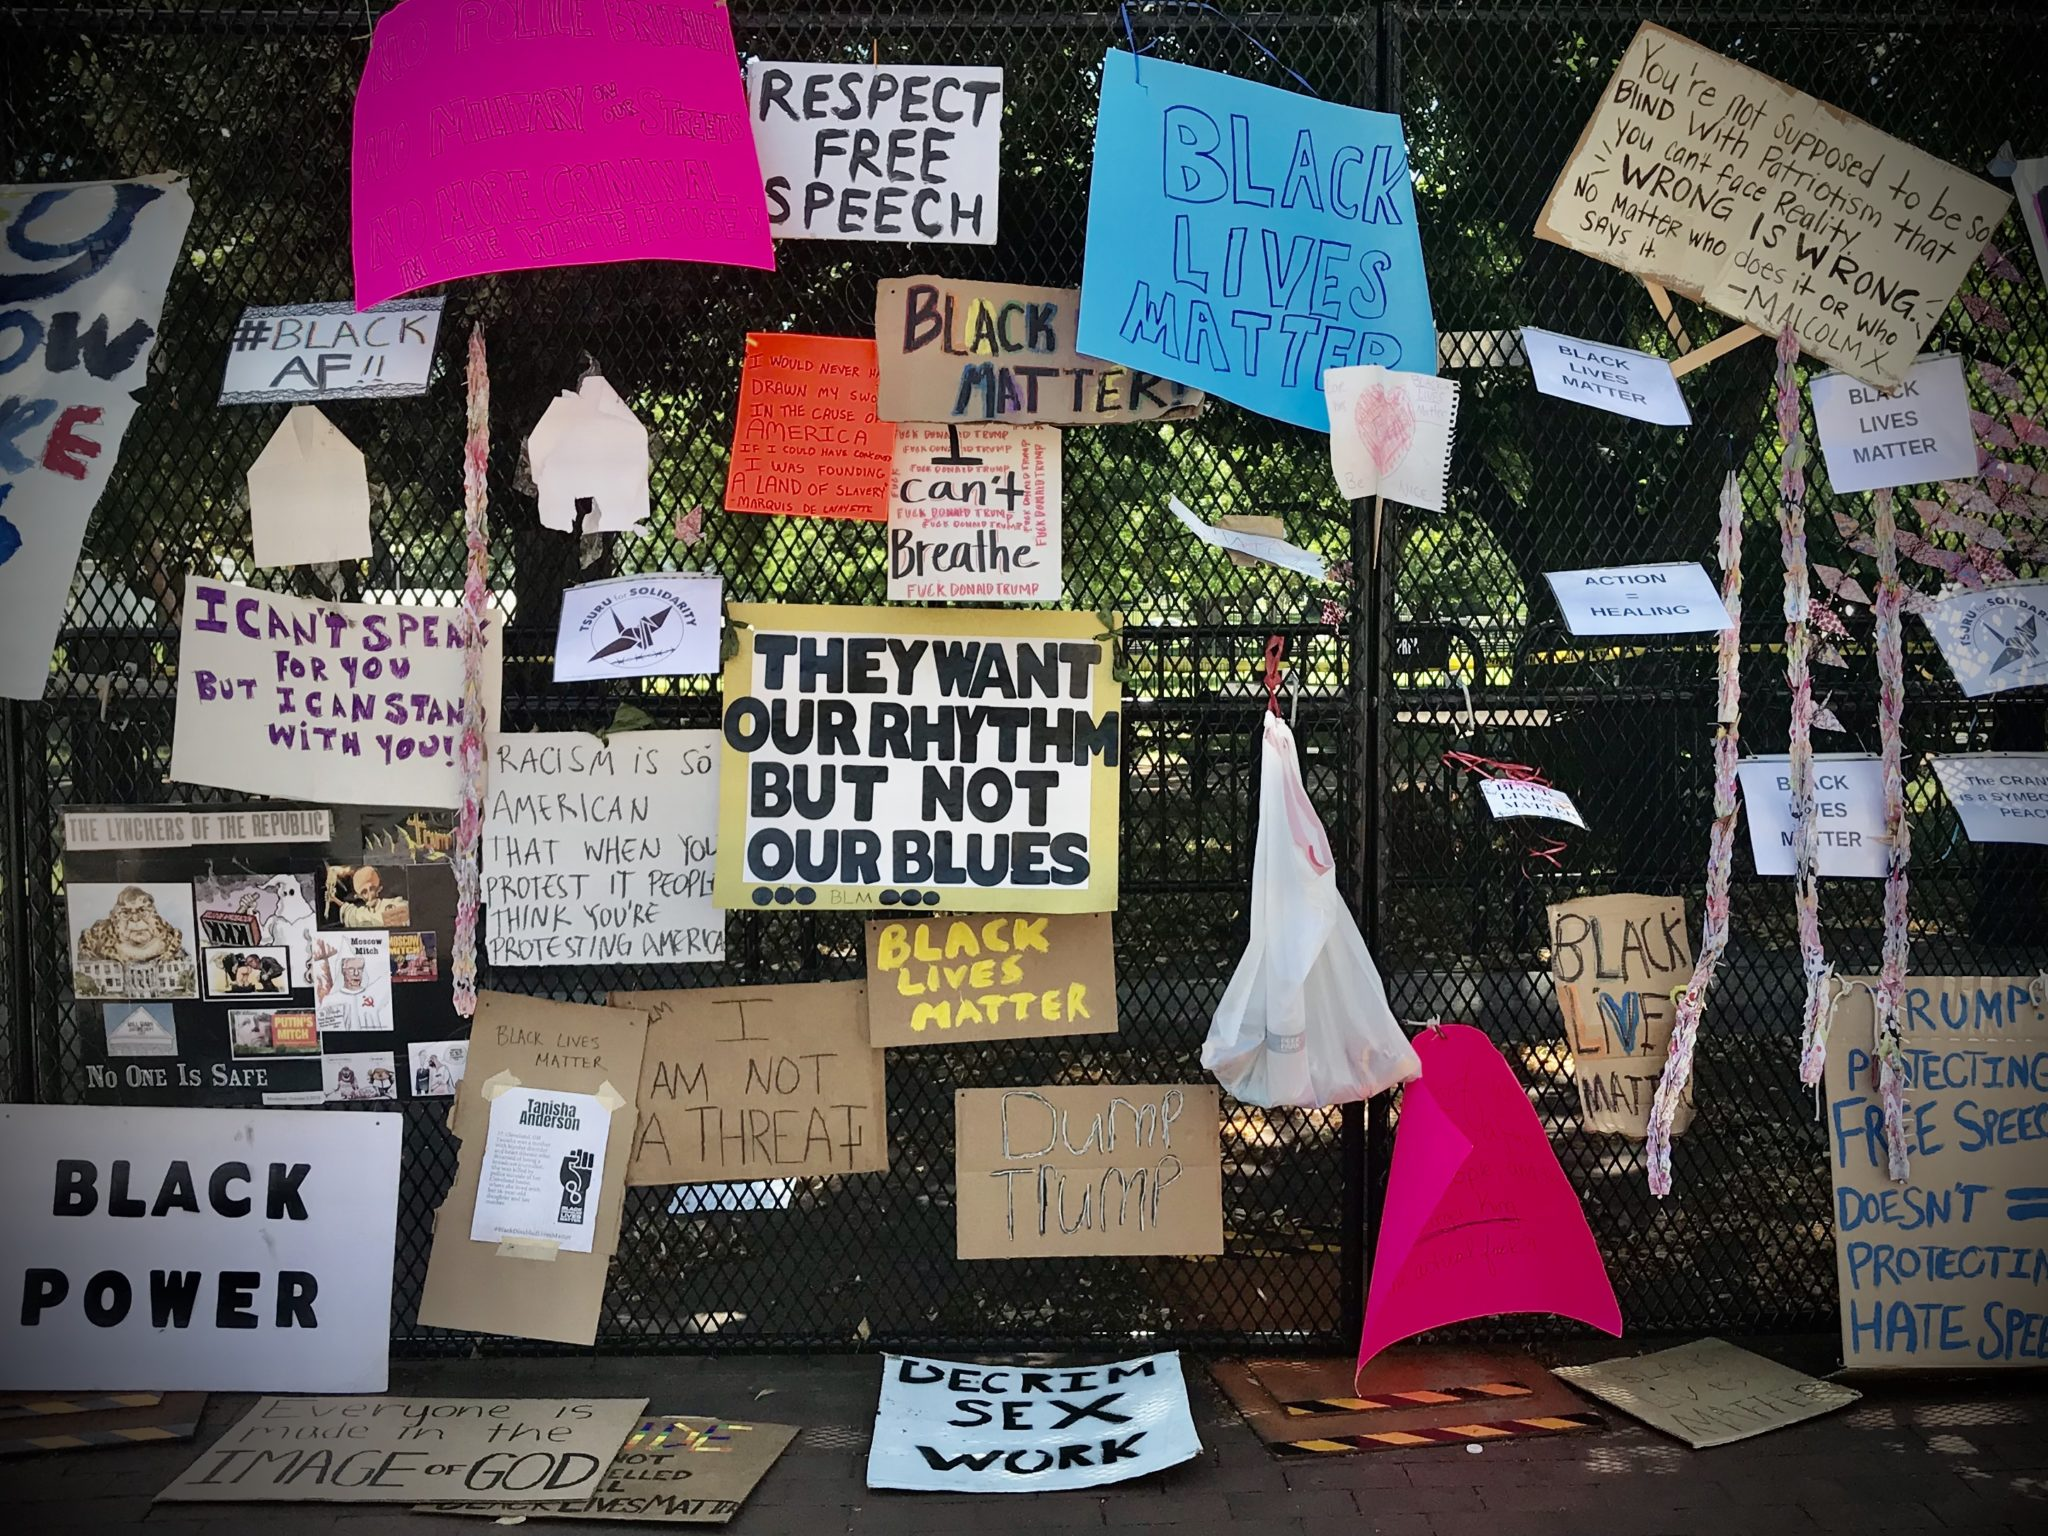 PHOTOS: The Fence Near the White House Has Become a Gallery of Protest